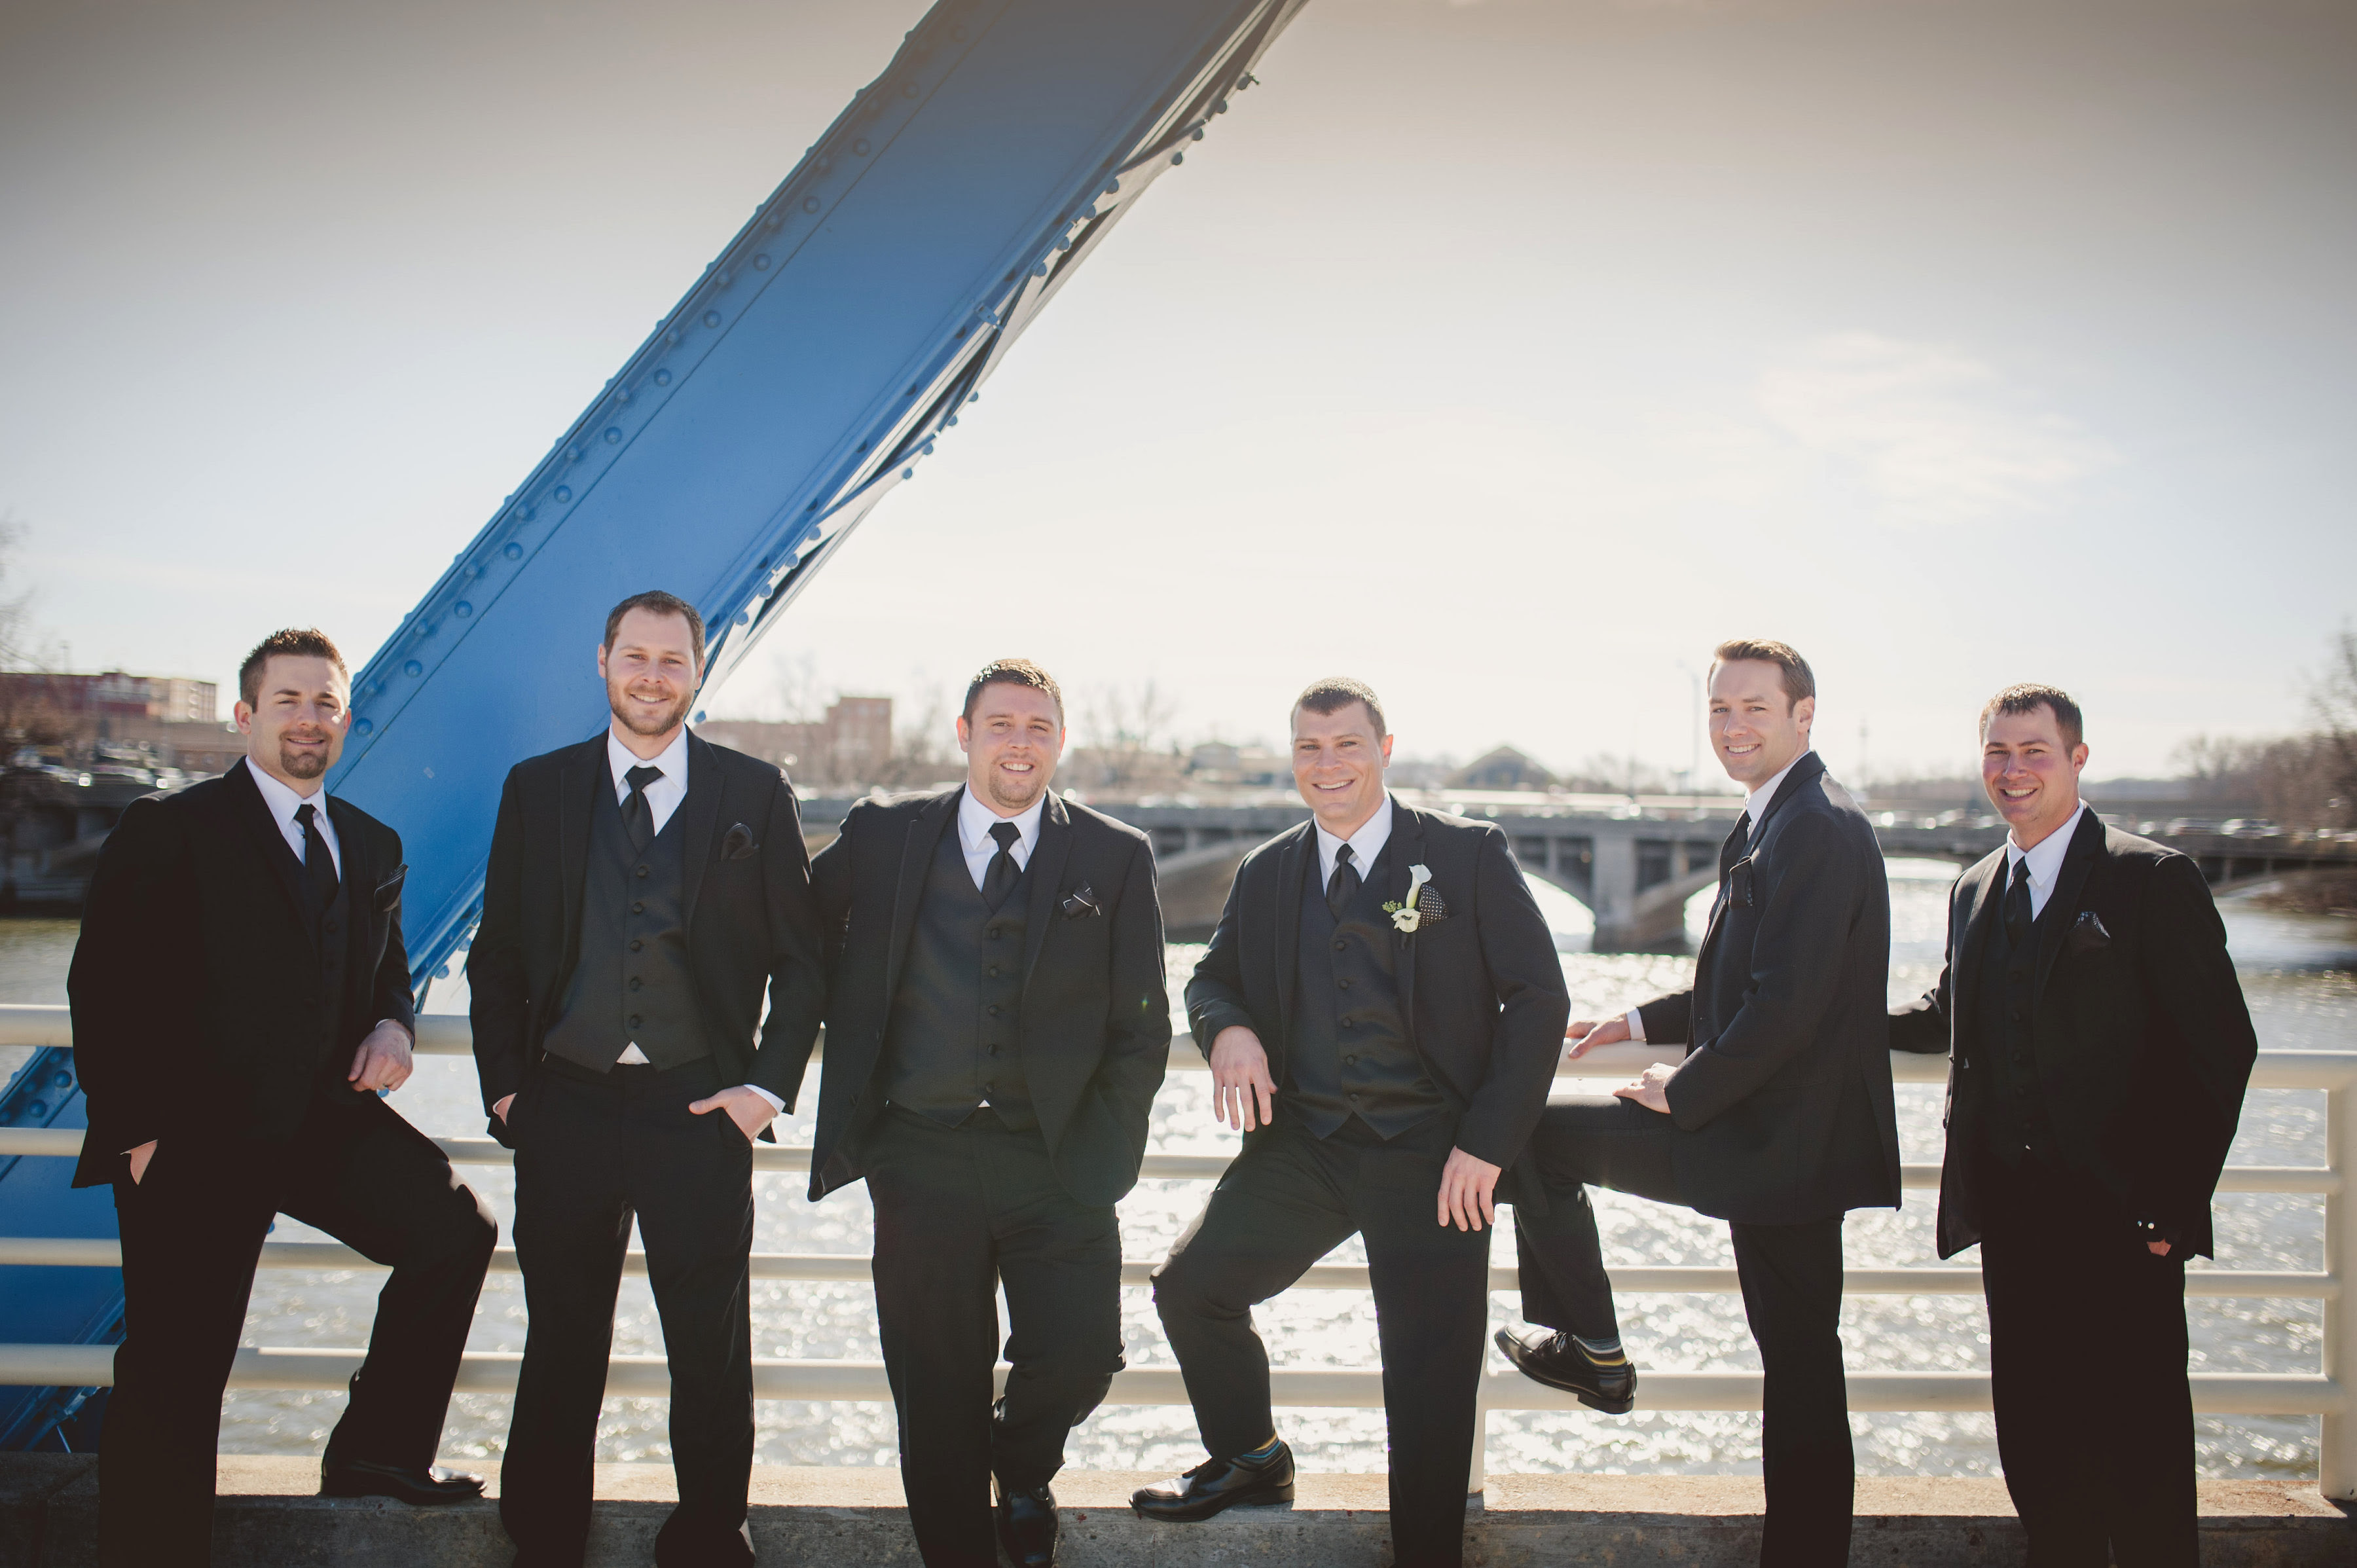 wedding in grand rapids mi